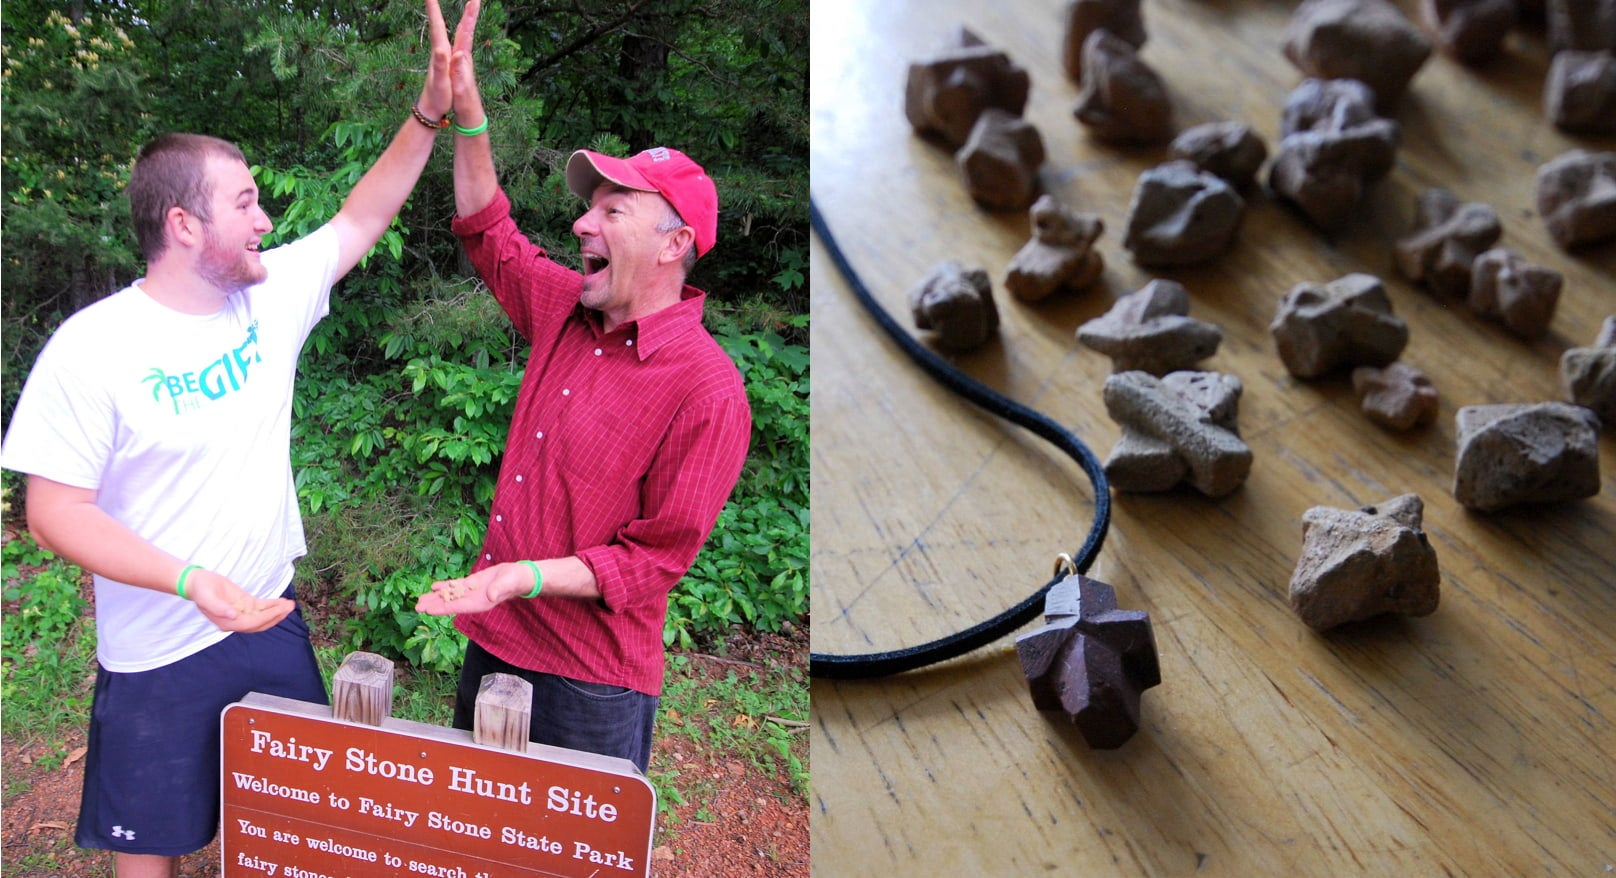 two men smiling and high fiving after collecting firy stones in fairy stone state park, next to an image of fairy stones